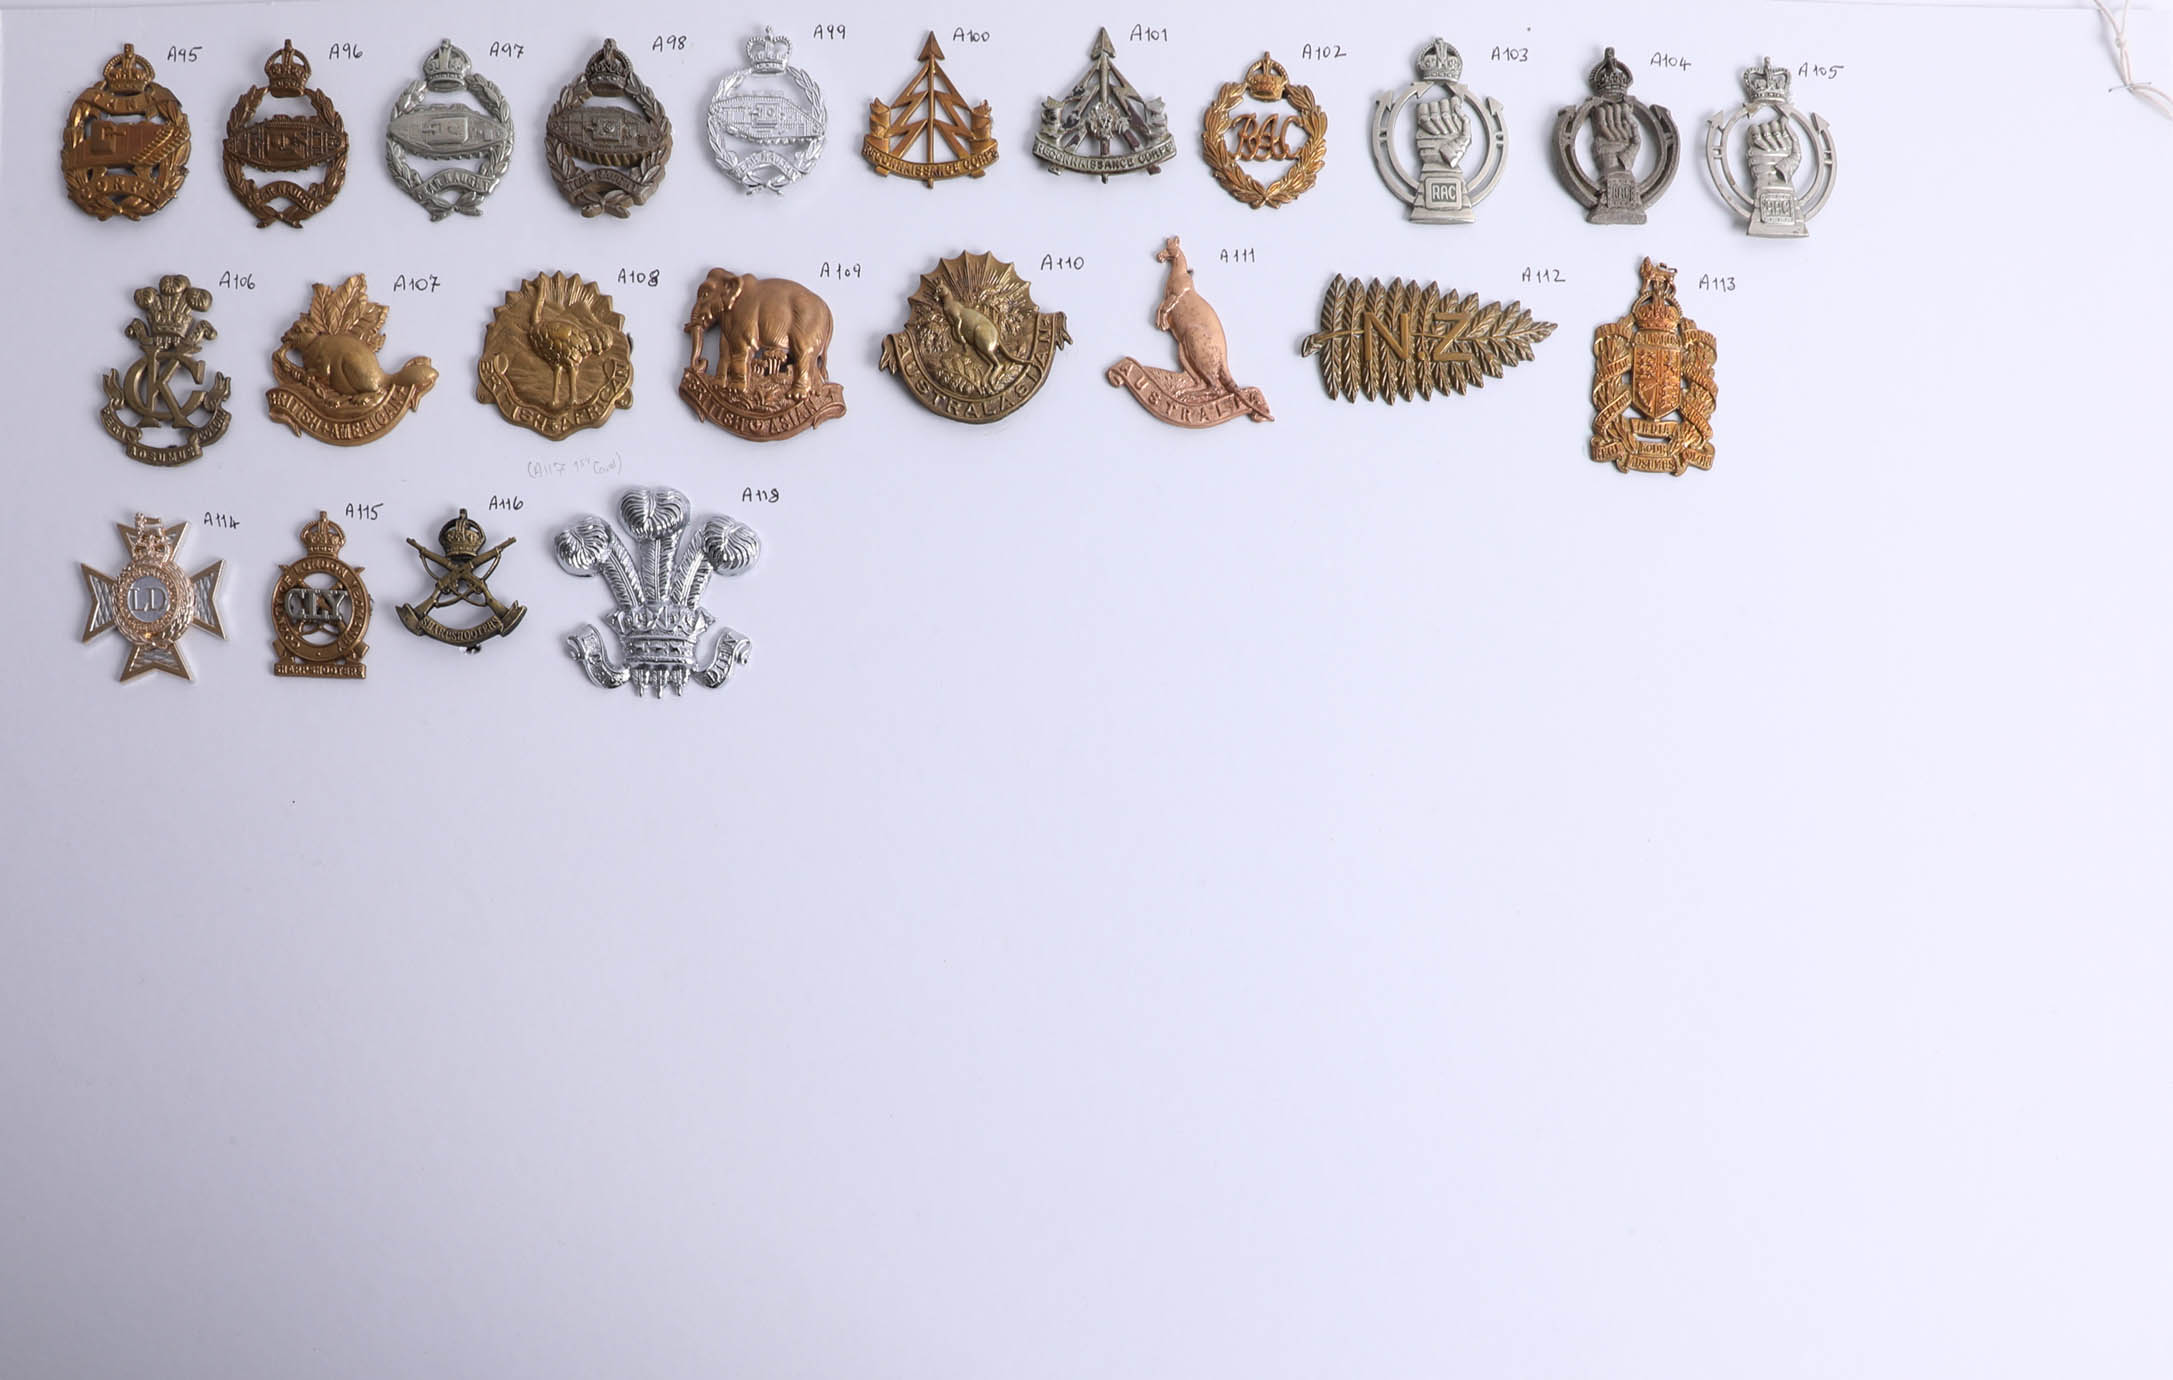 Lot 001 - A collection of approx. 119 military cap badges displayed on two sheets, including a helmet plate